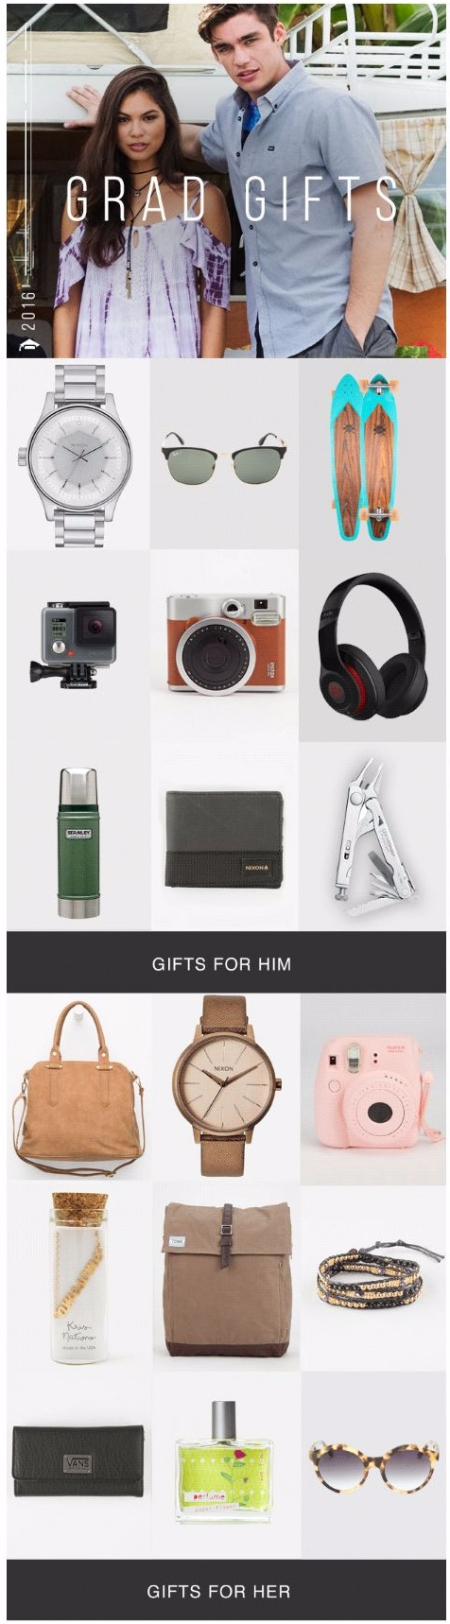 Grad Gifts for Him and Her